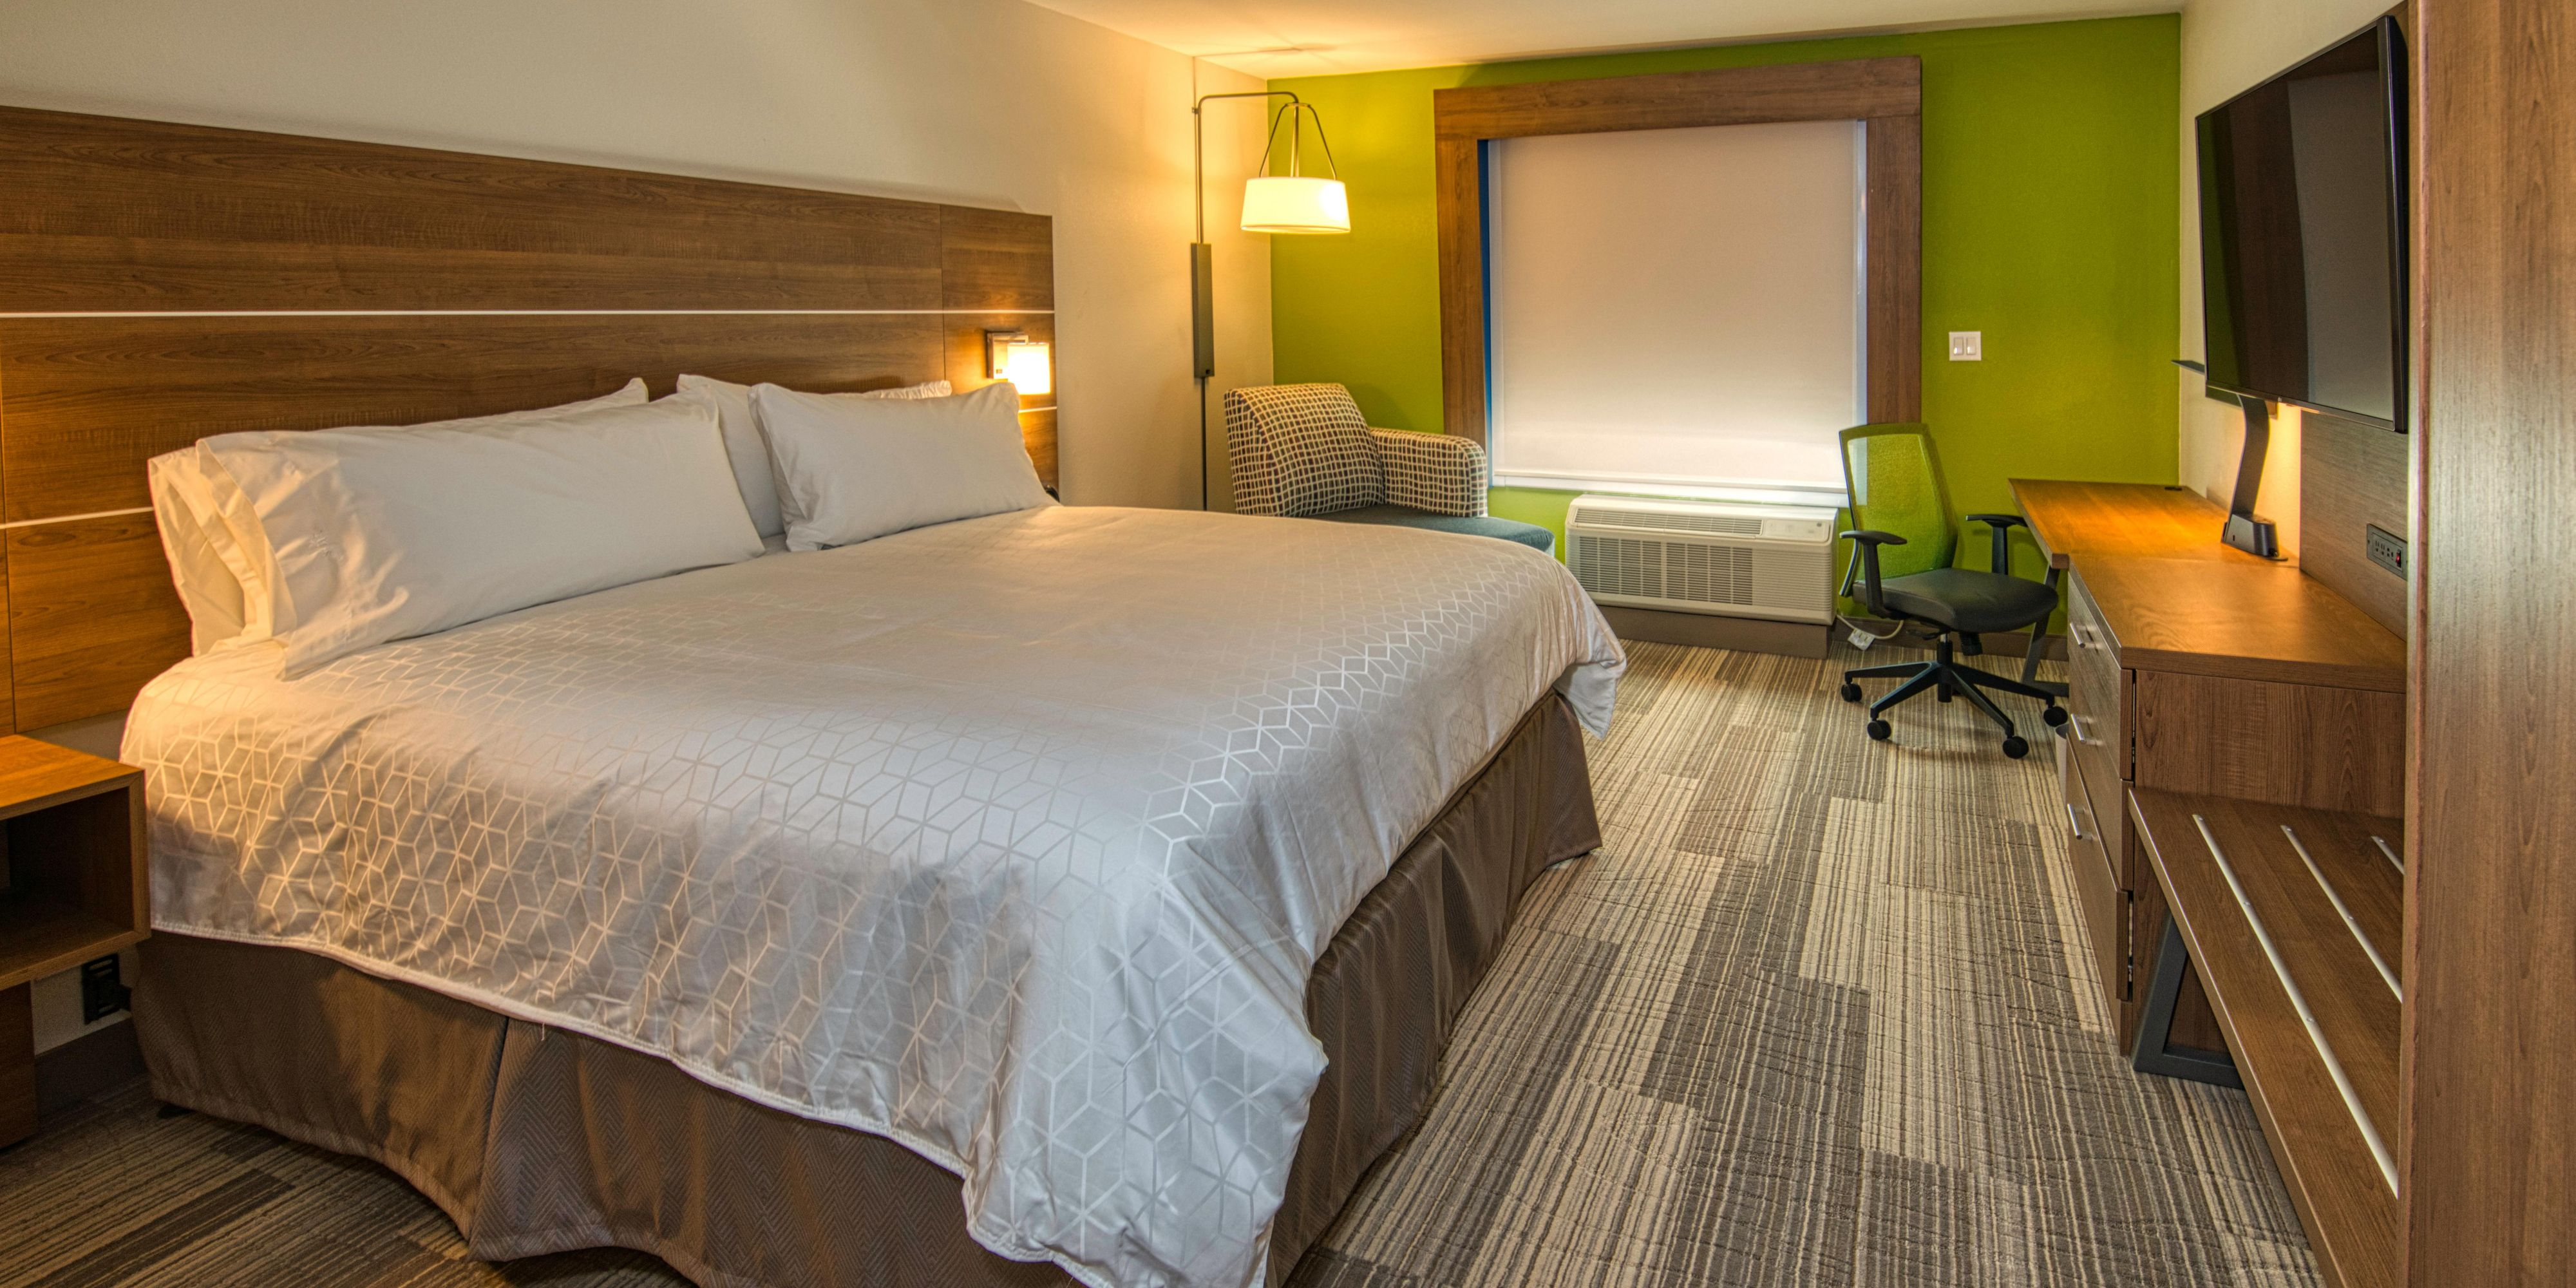 Hotels in Lincoln near Memorial Stadium  Holiday Inn Express